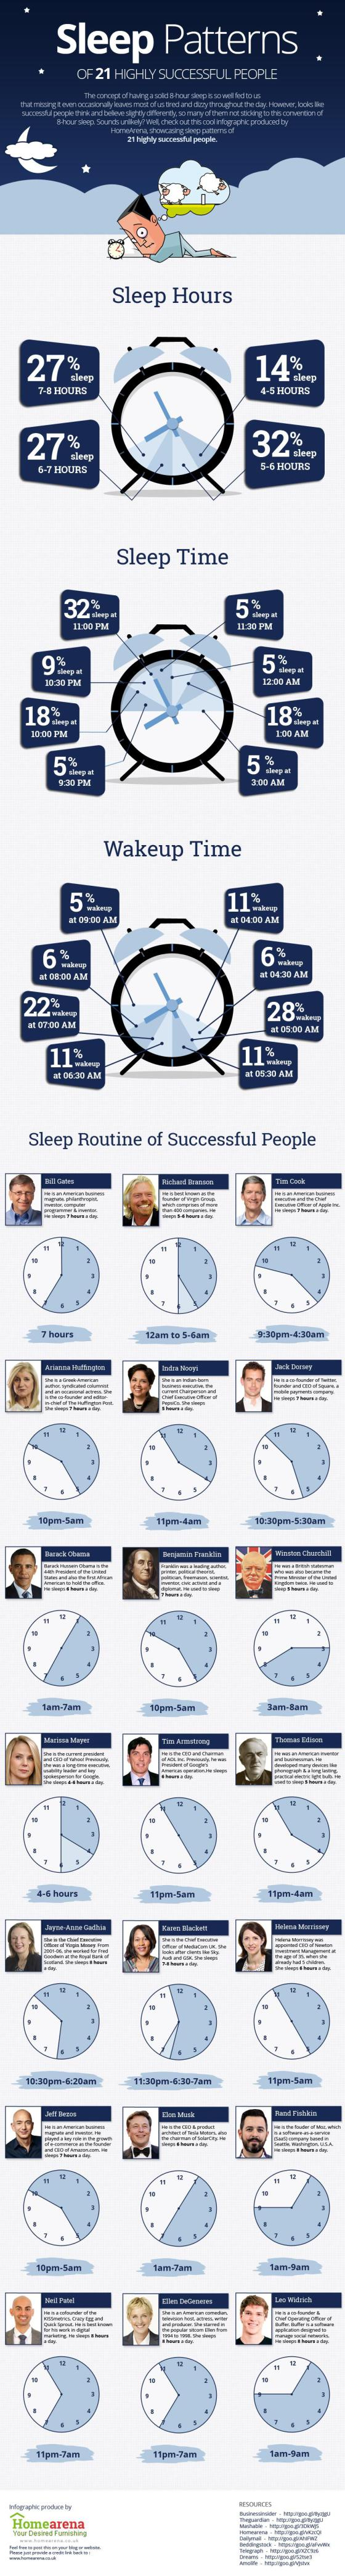 sleep-patterns-successful-people